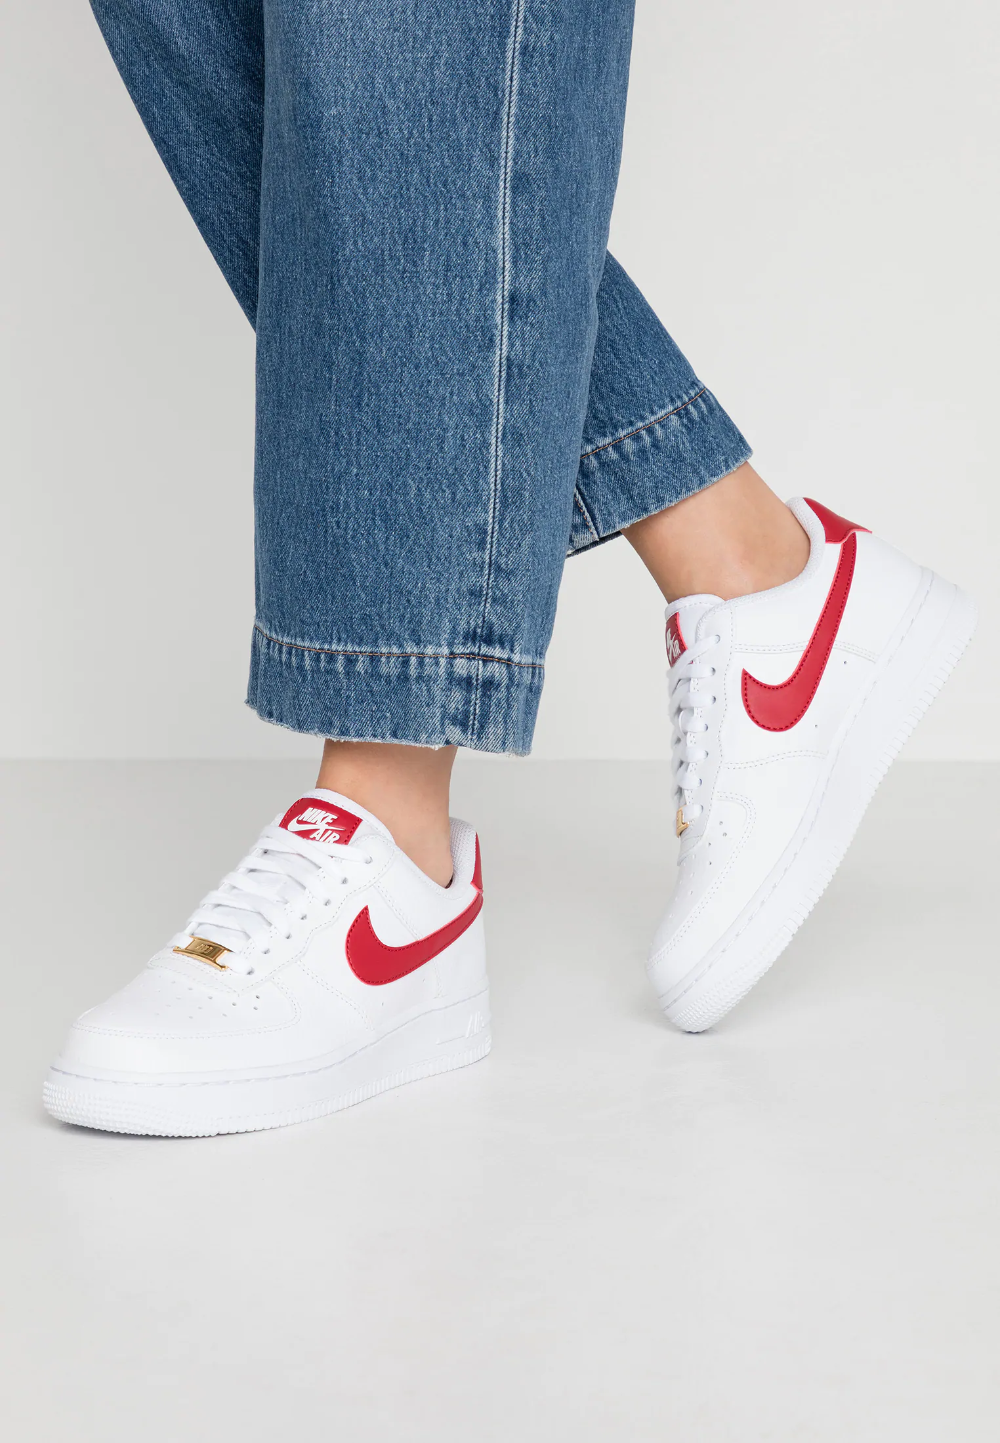 Nike Sportswear Air Force 1 07 Sneakers Laag White Gym Red Metallic Gold Wit Zalando Nl Nike Schoenen Nike Herenmode